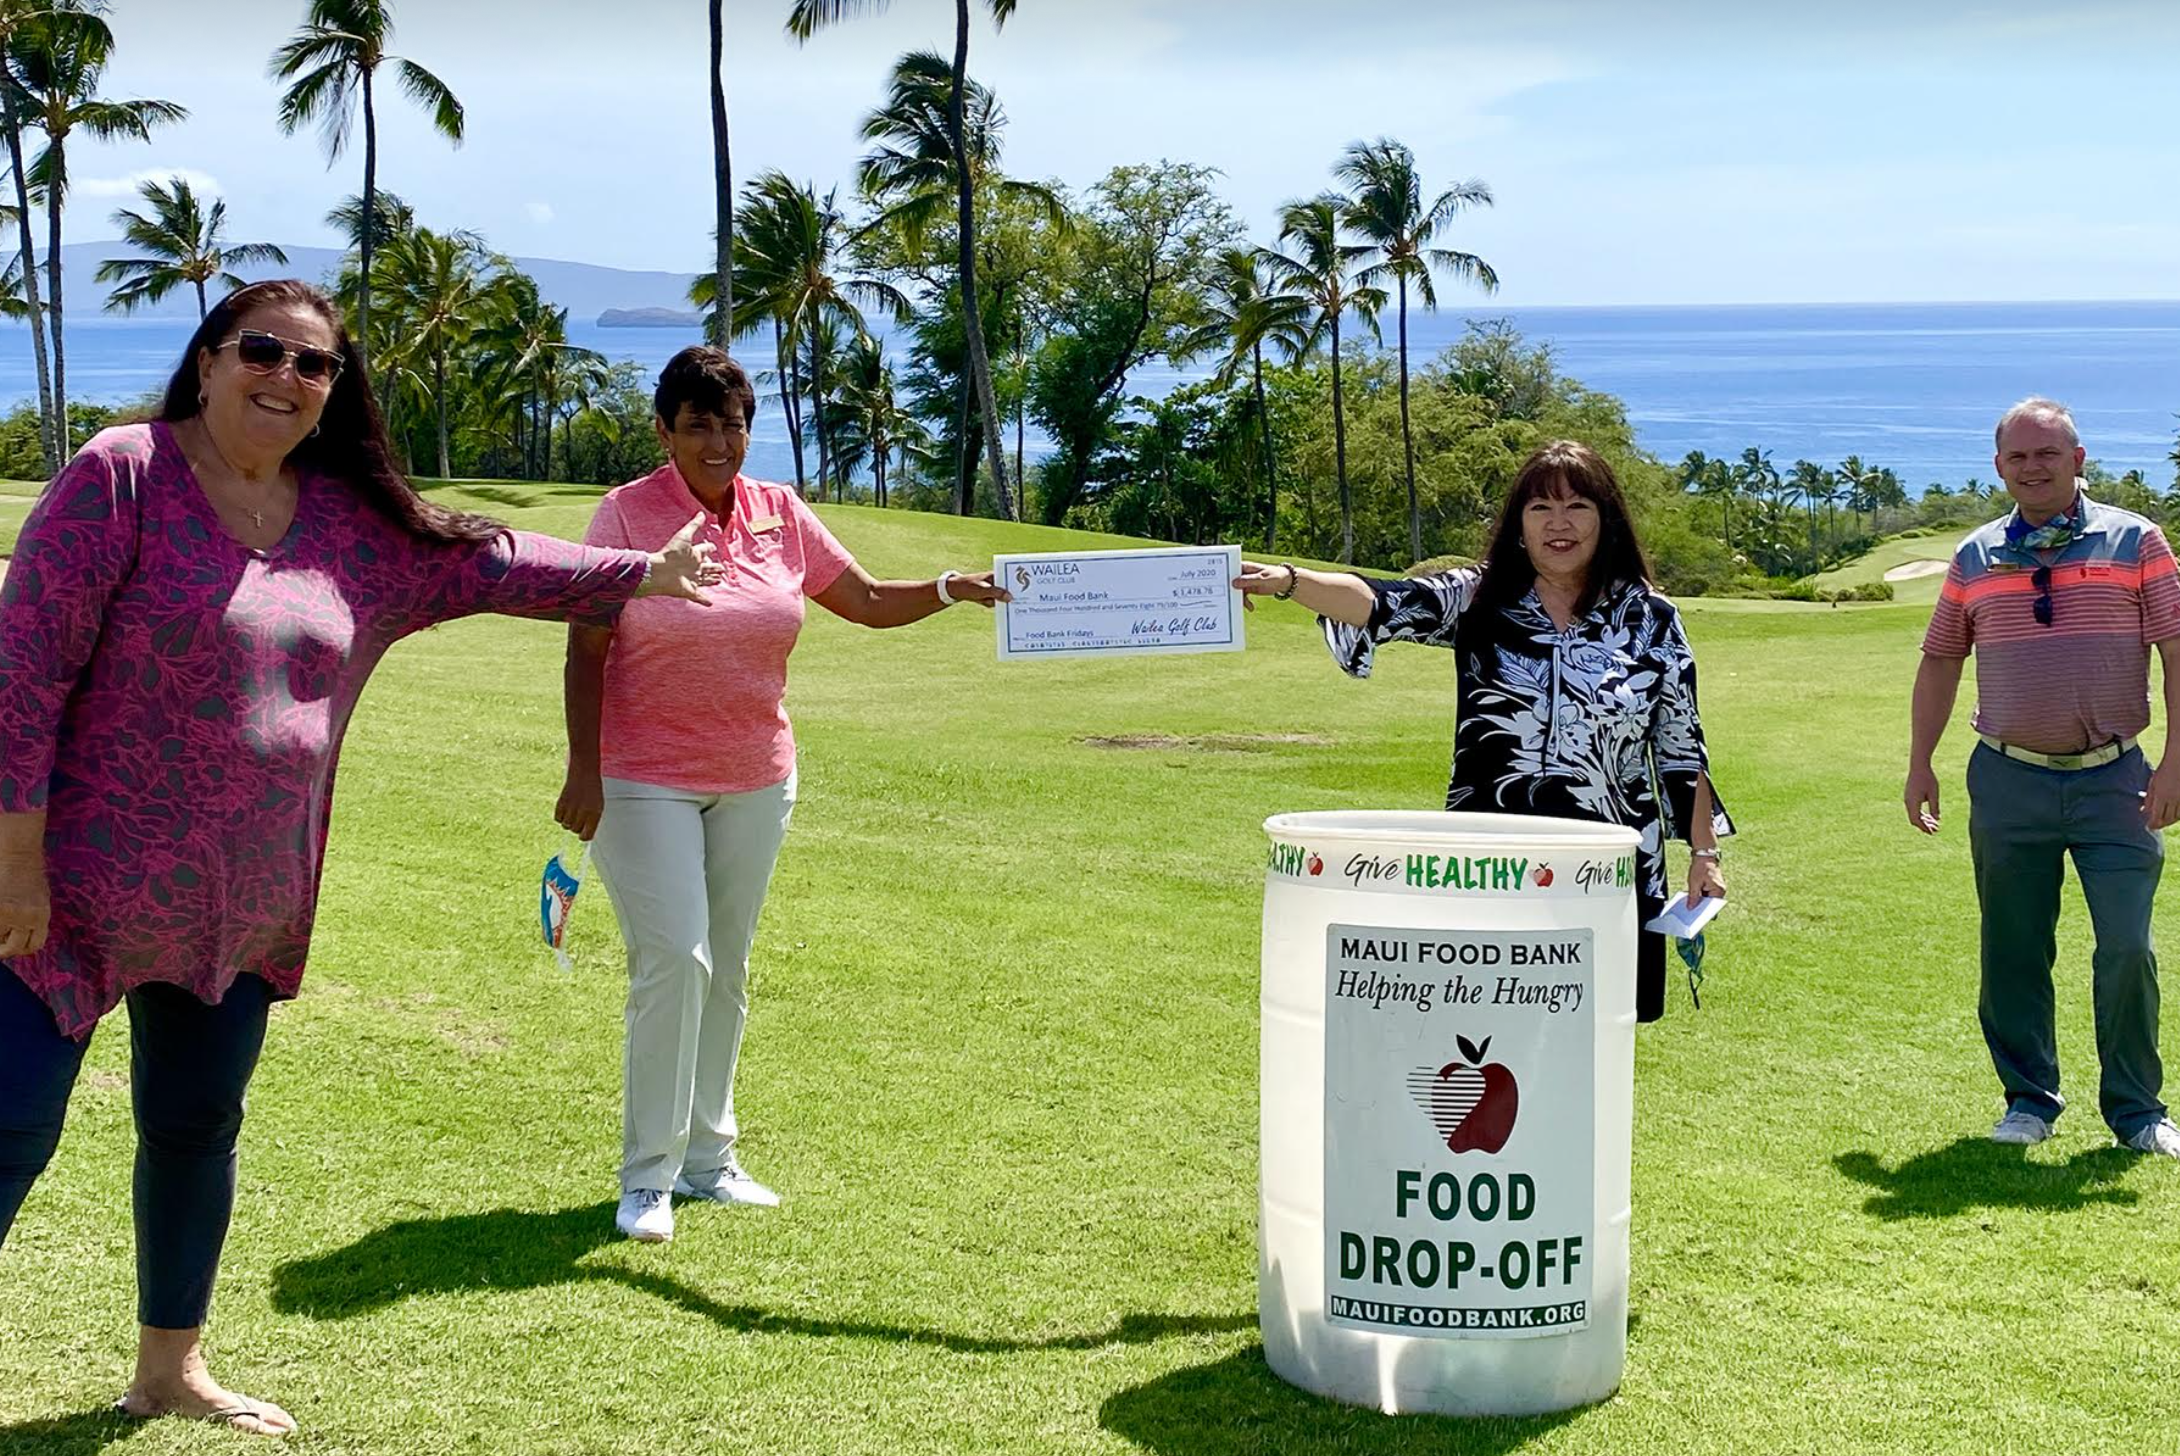 Maui Food Bank Receives Additional Donation from Wailea Golf Club